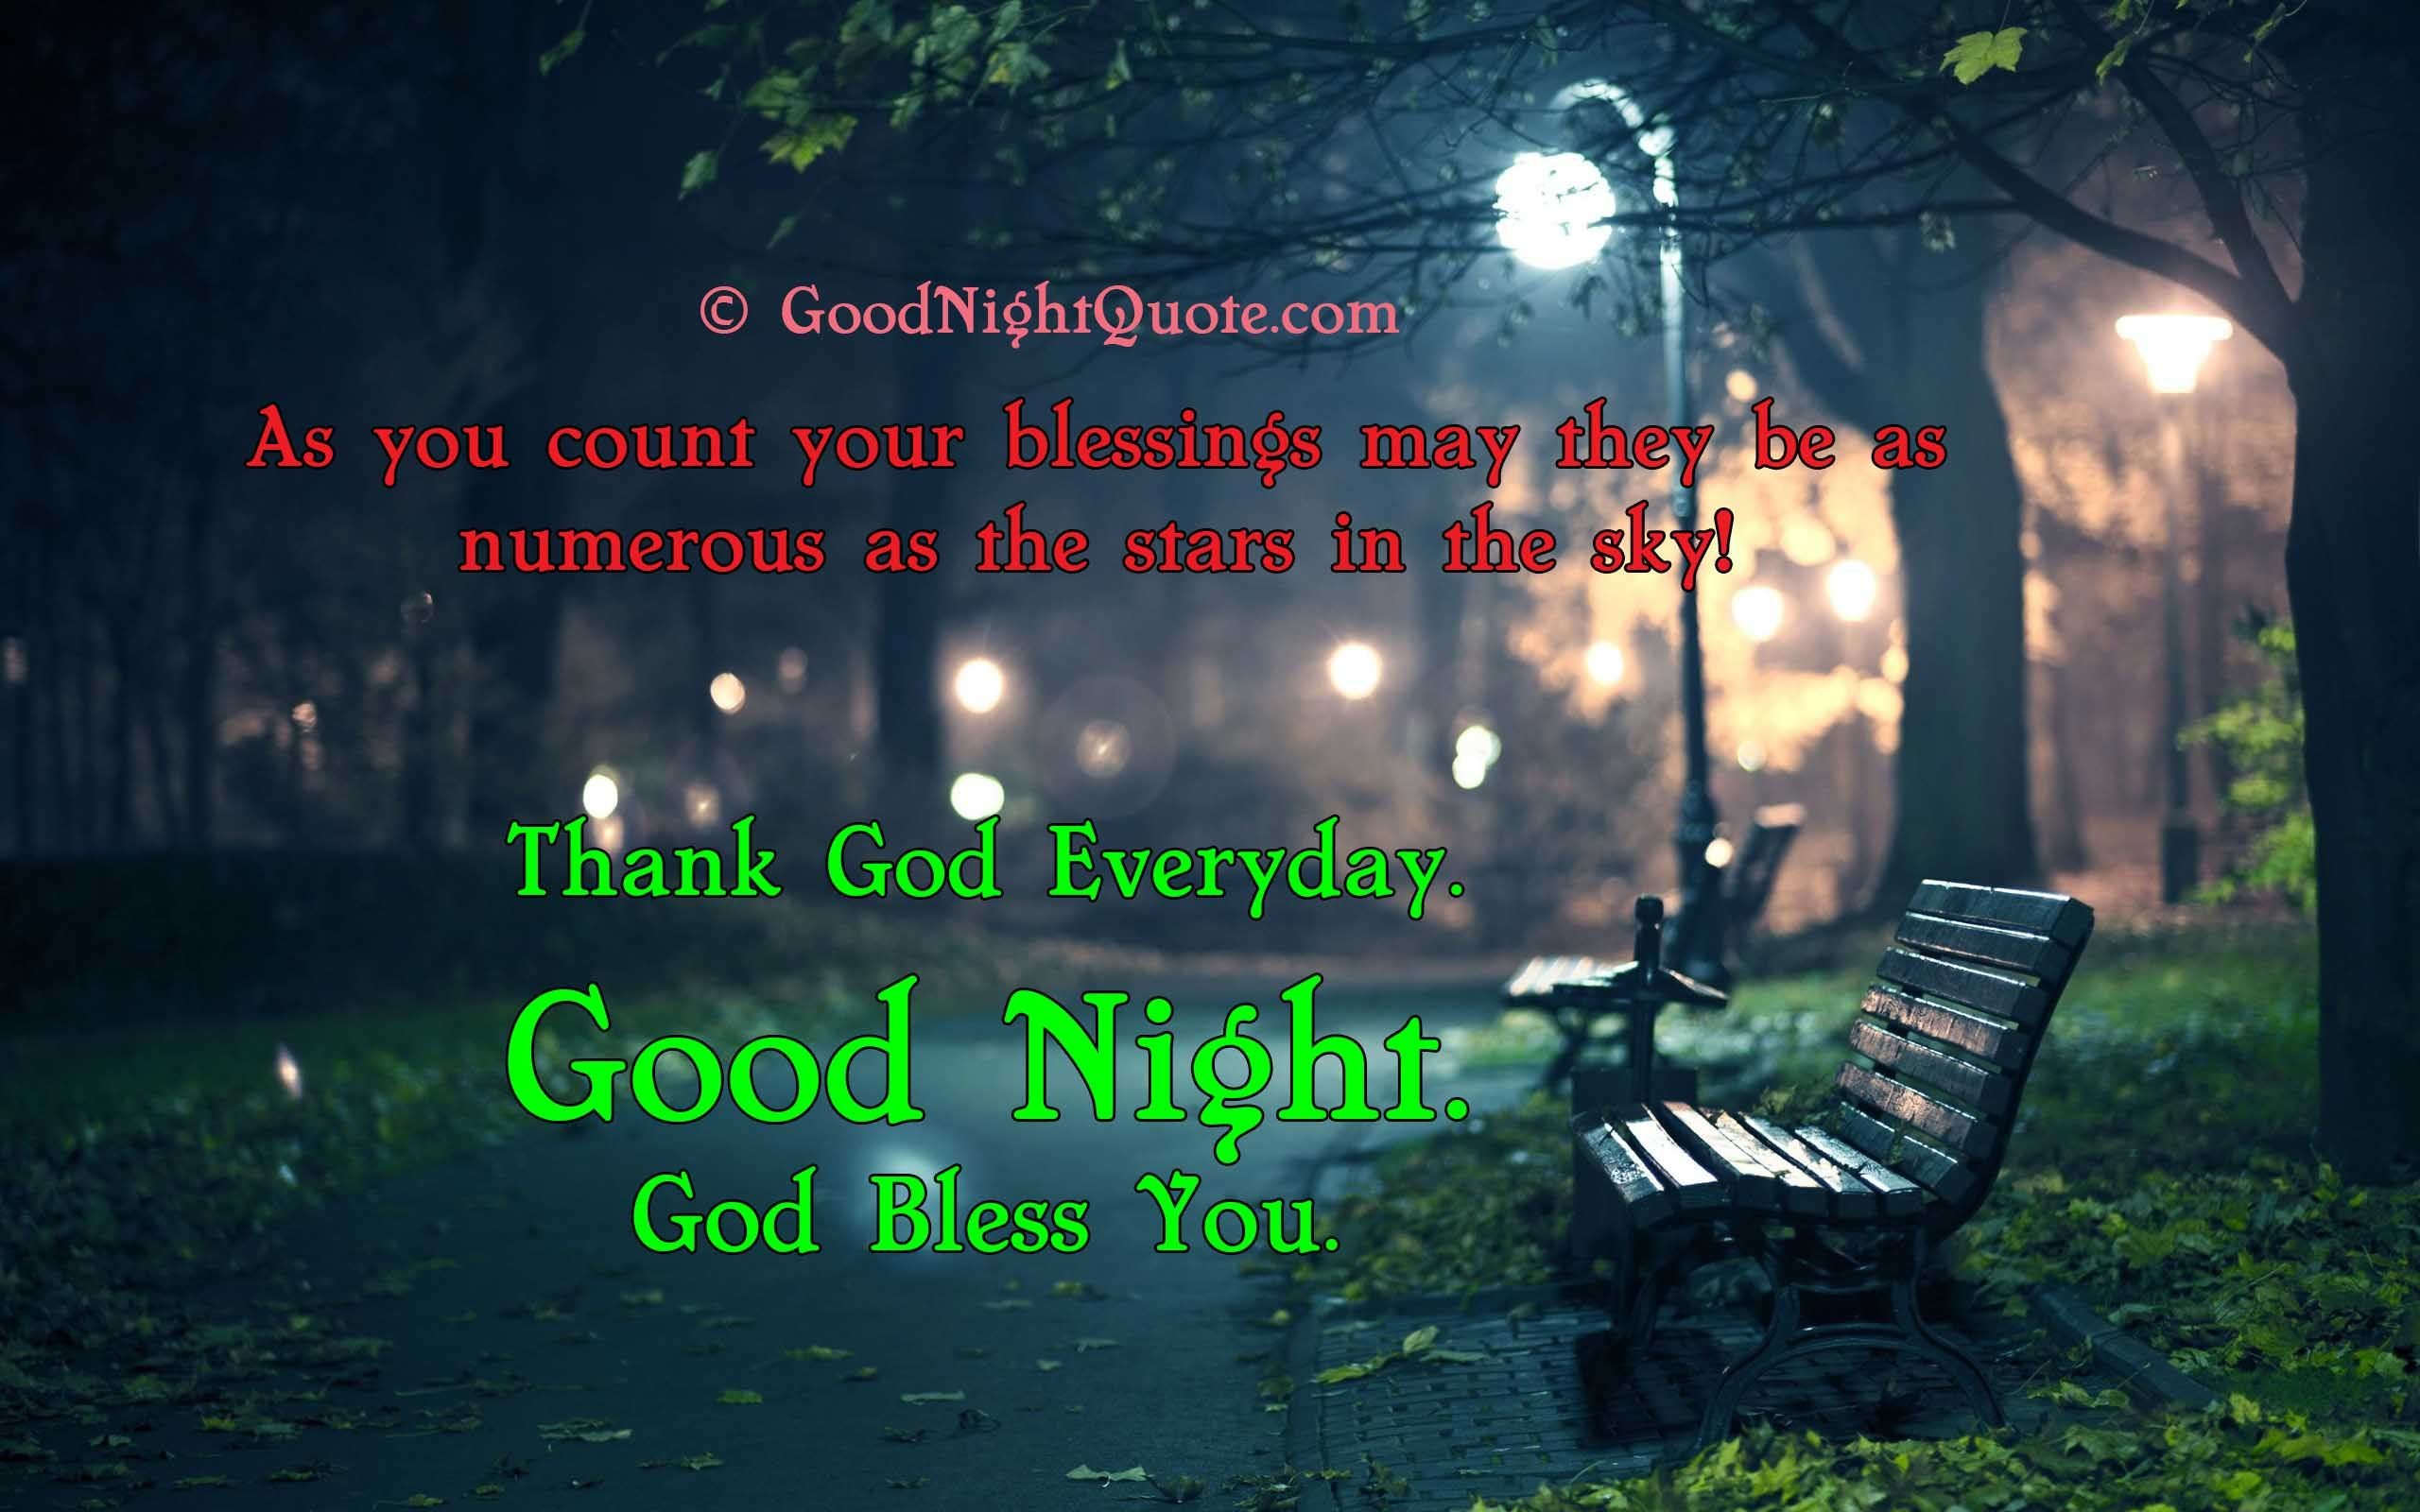 Good Night God Bless Quote Walk Park Hd Wallpaper